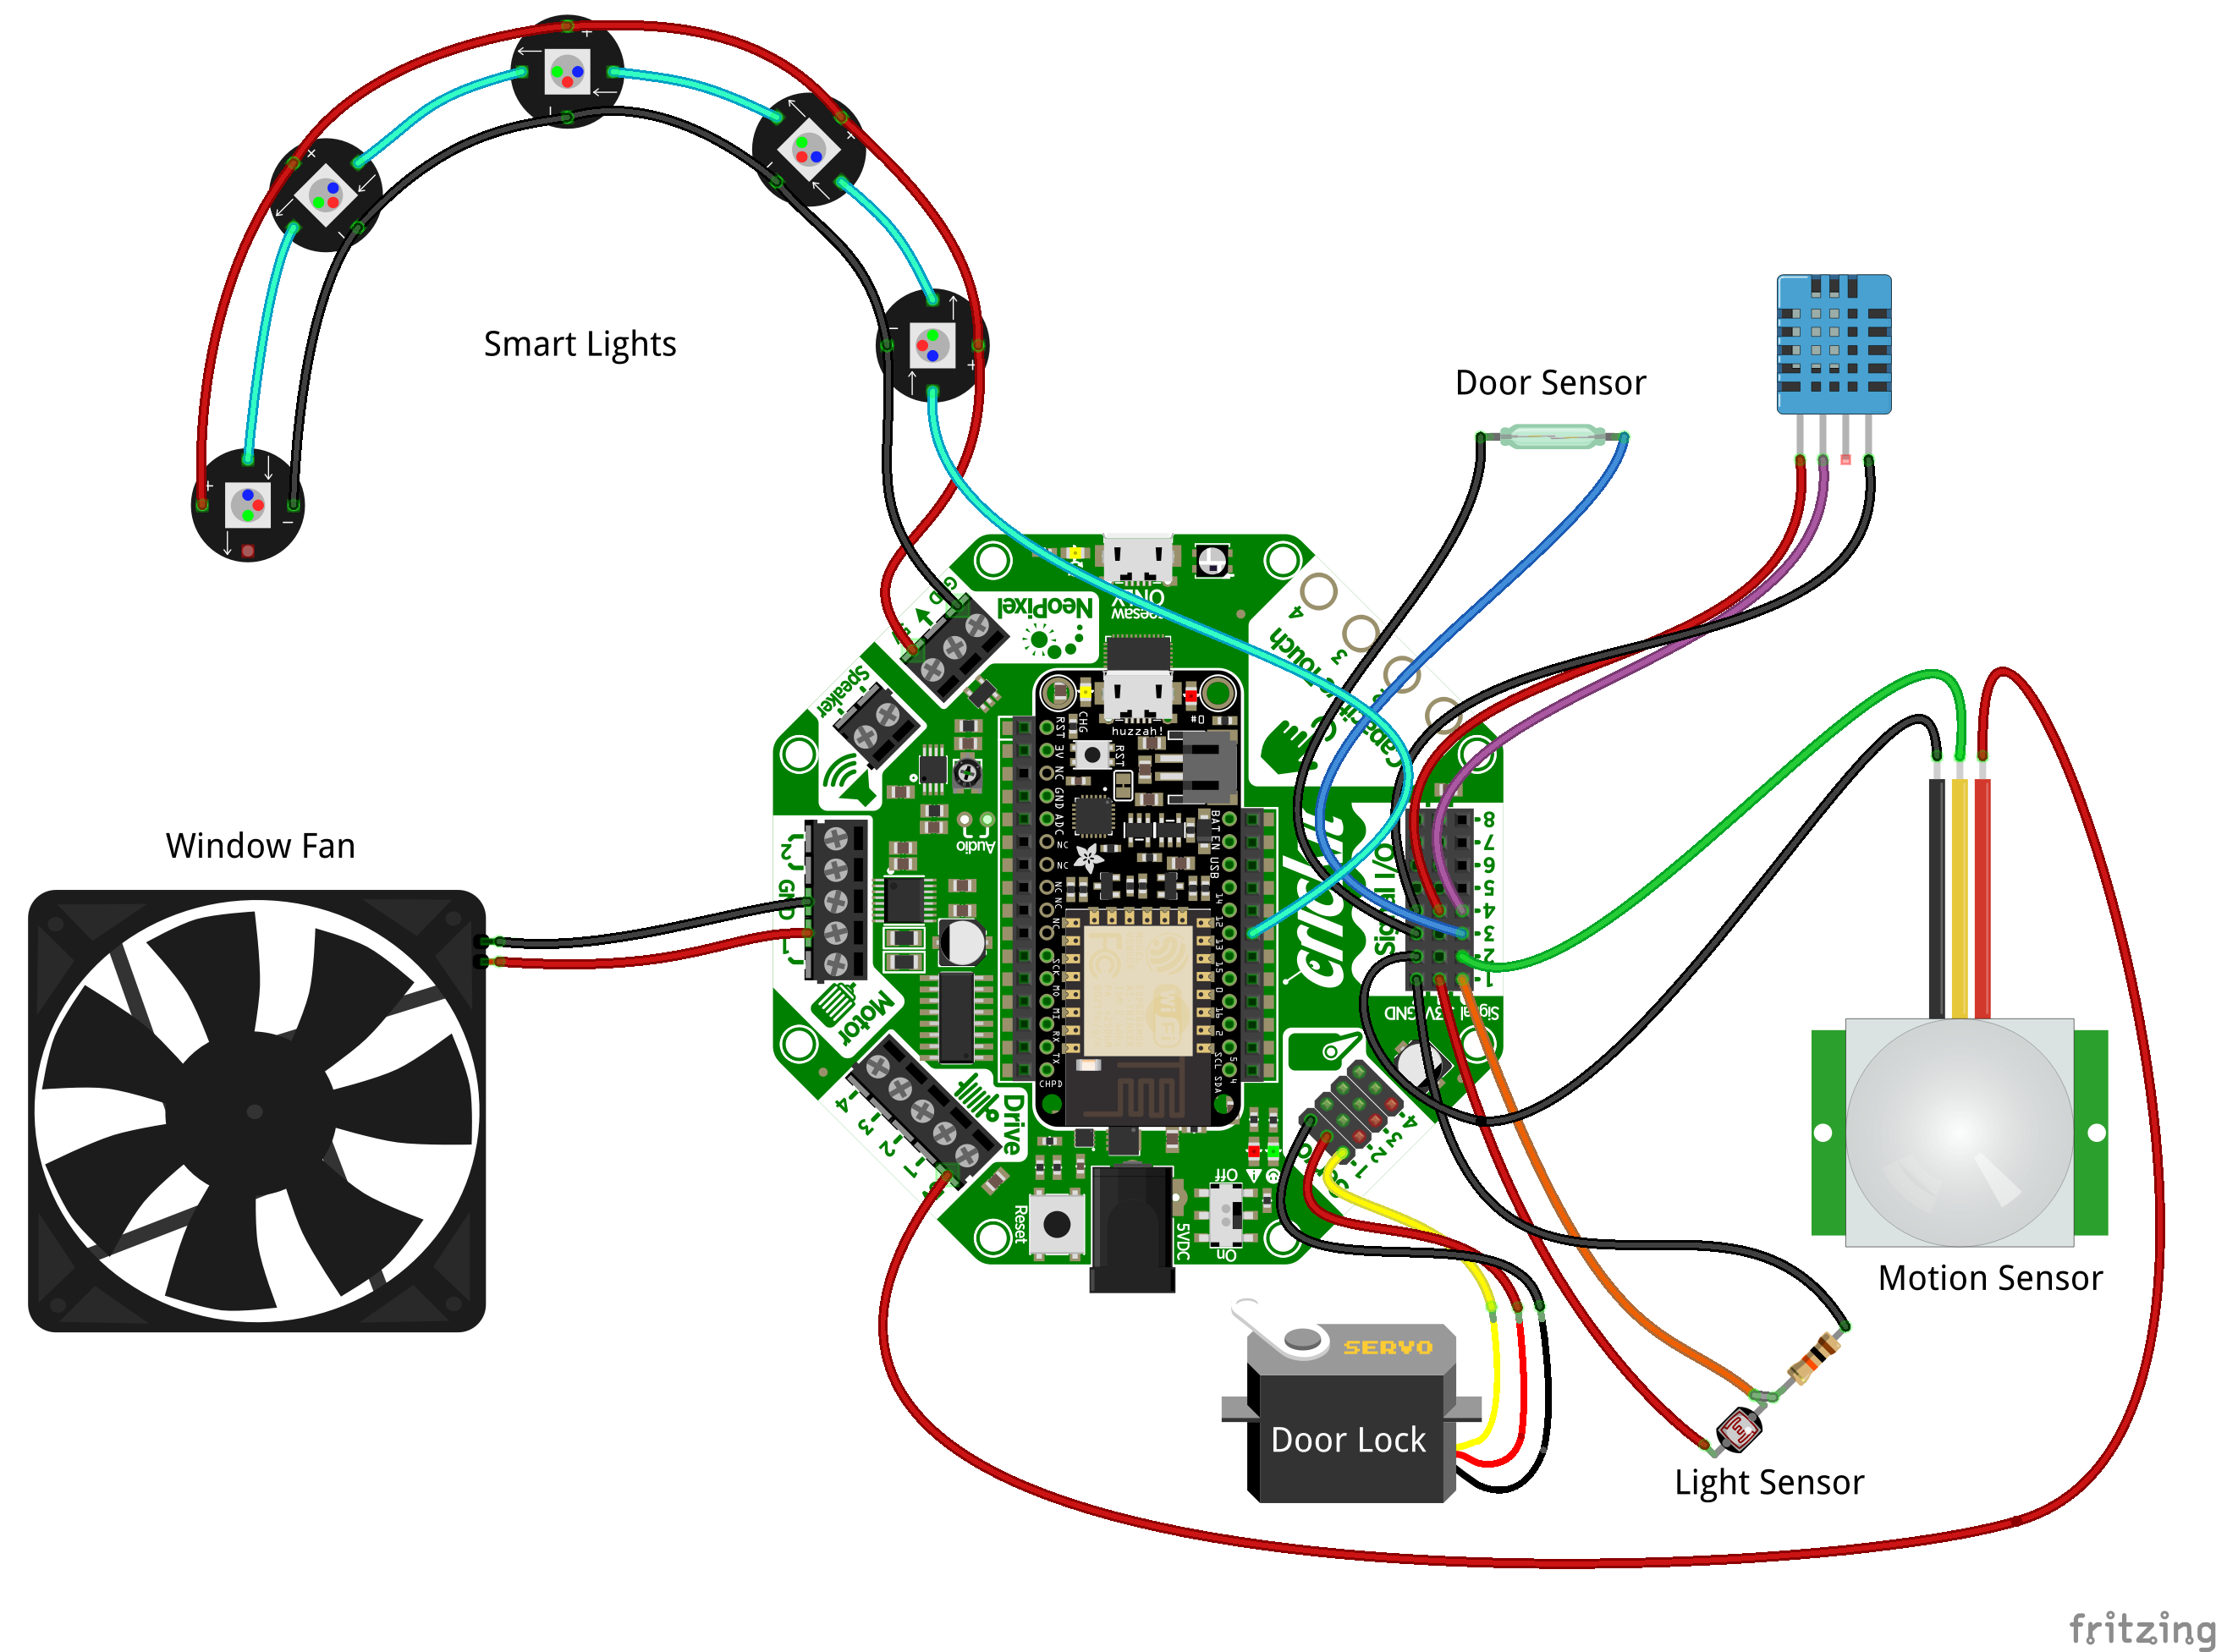 internet_of_things___iot_Huzzah_Smart_Home_Fritzing.png